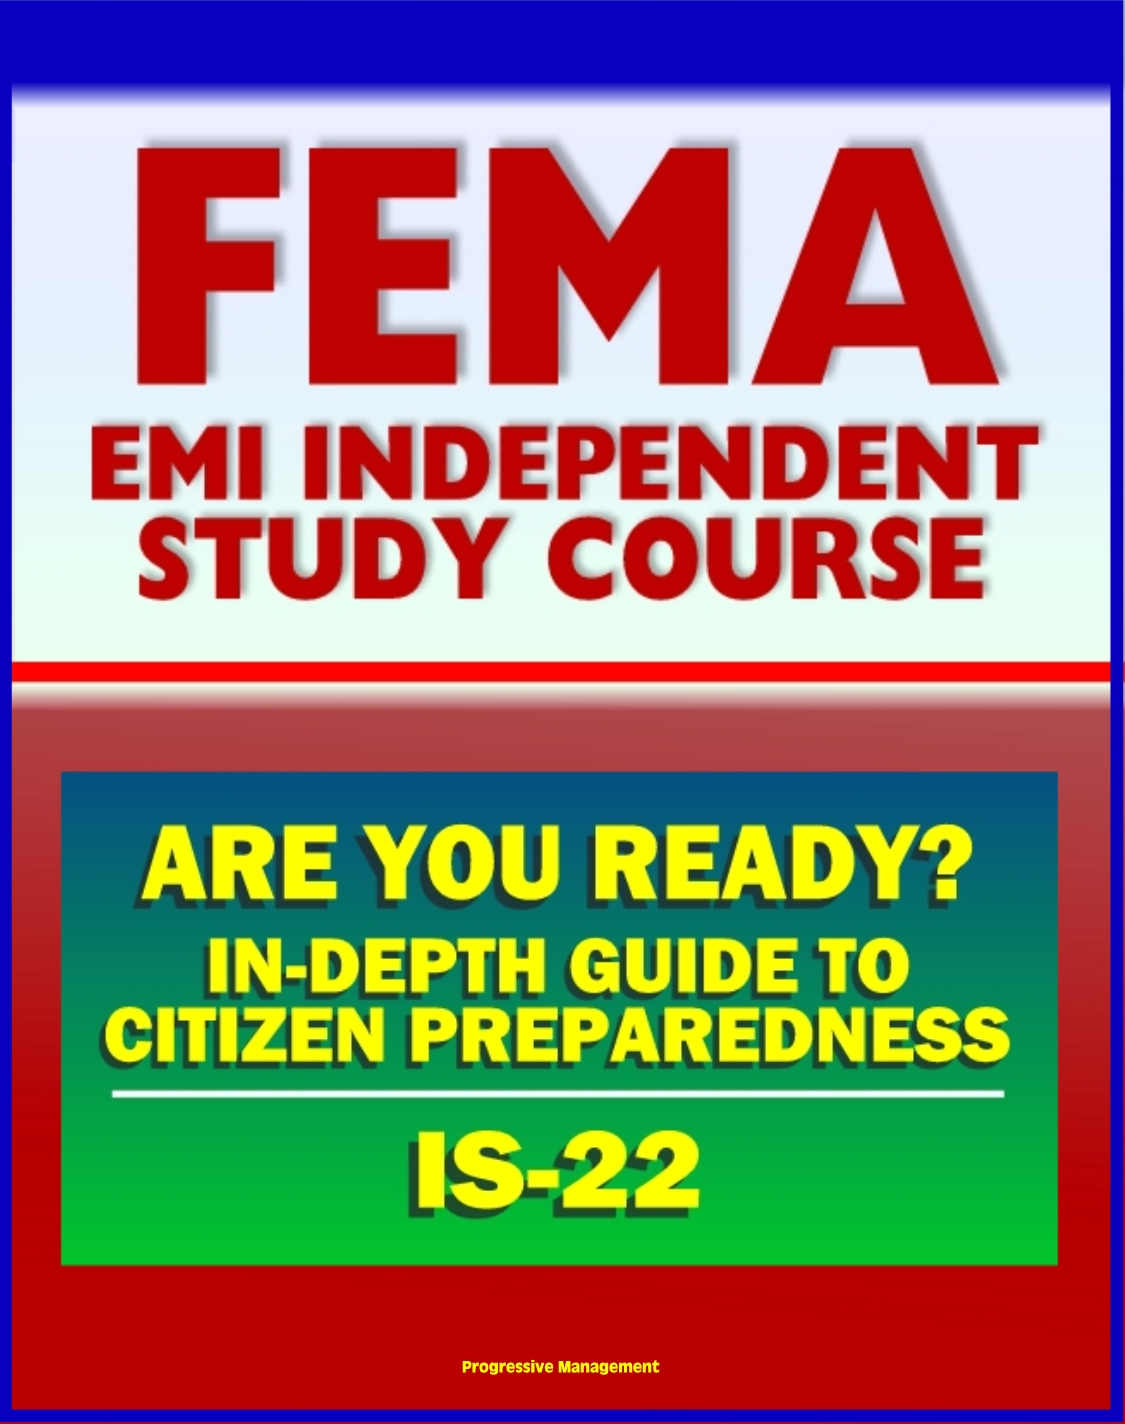 21st Century FEMA Study Course: Are You Ready? An In-depth Guide to Citizen  Preparedness (IS-22) - Basic Preparedness, Natural Disasters, Terrorism,